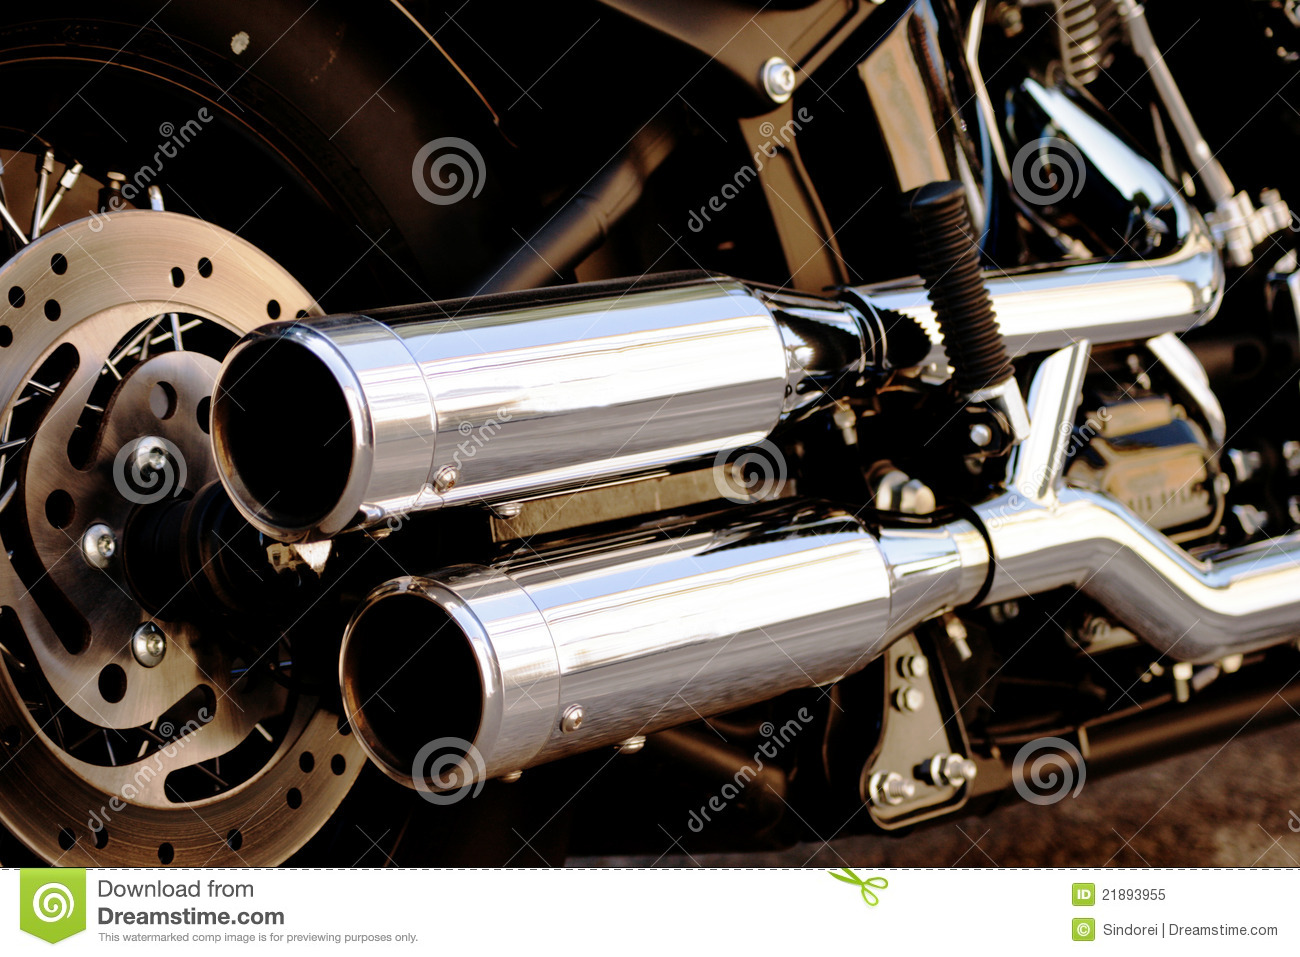 Shiny Motorcycle Double Exhaust Pipe Stock Image